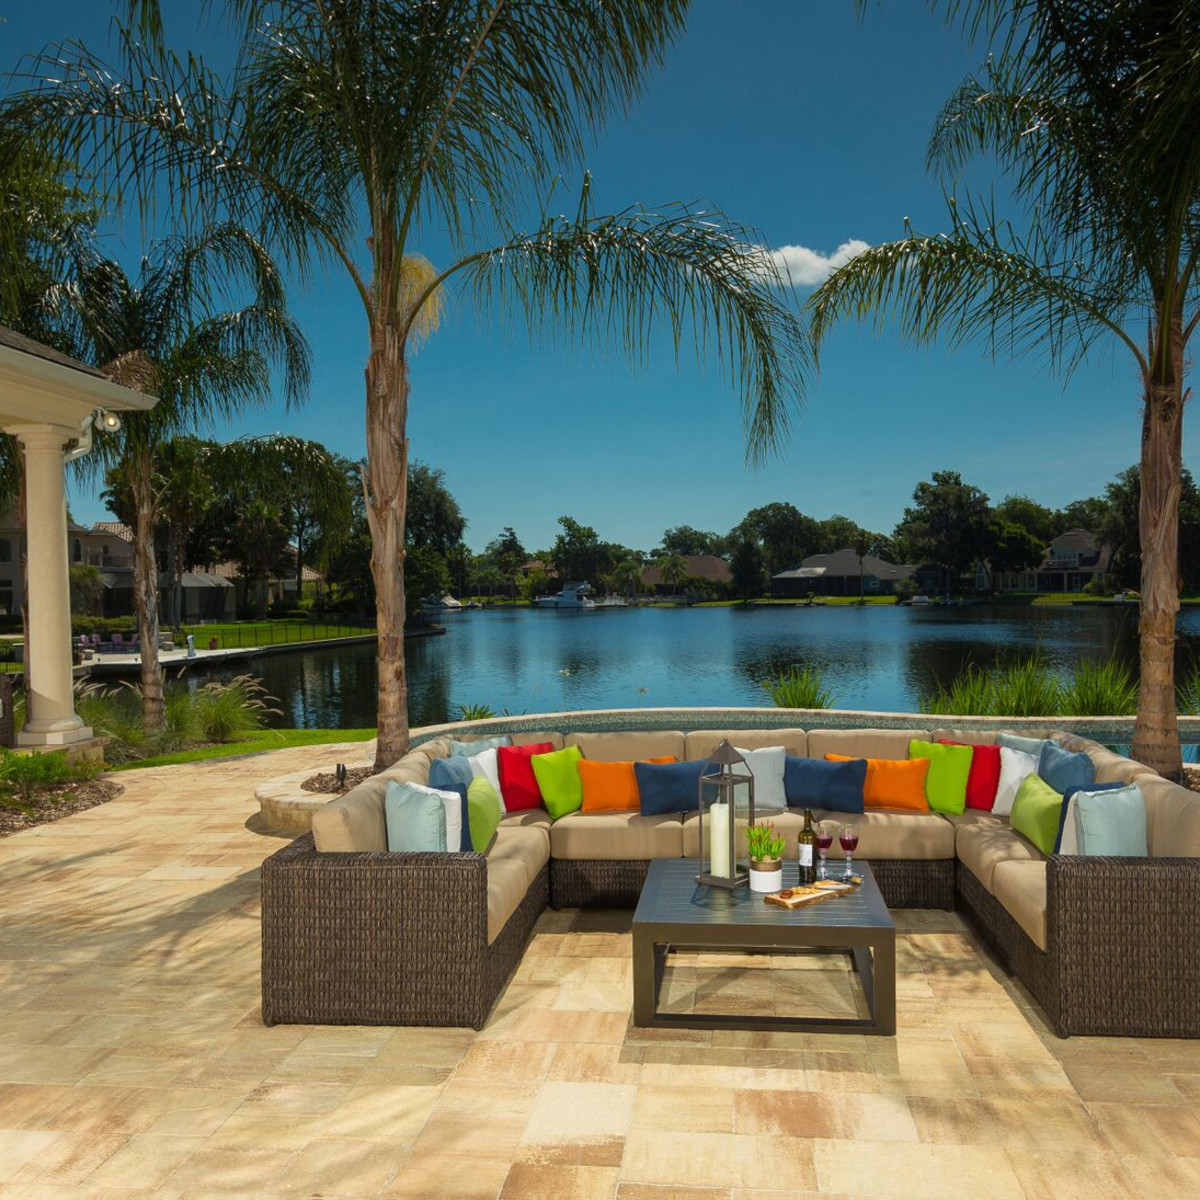 Patio furniture outside by pool